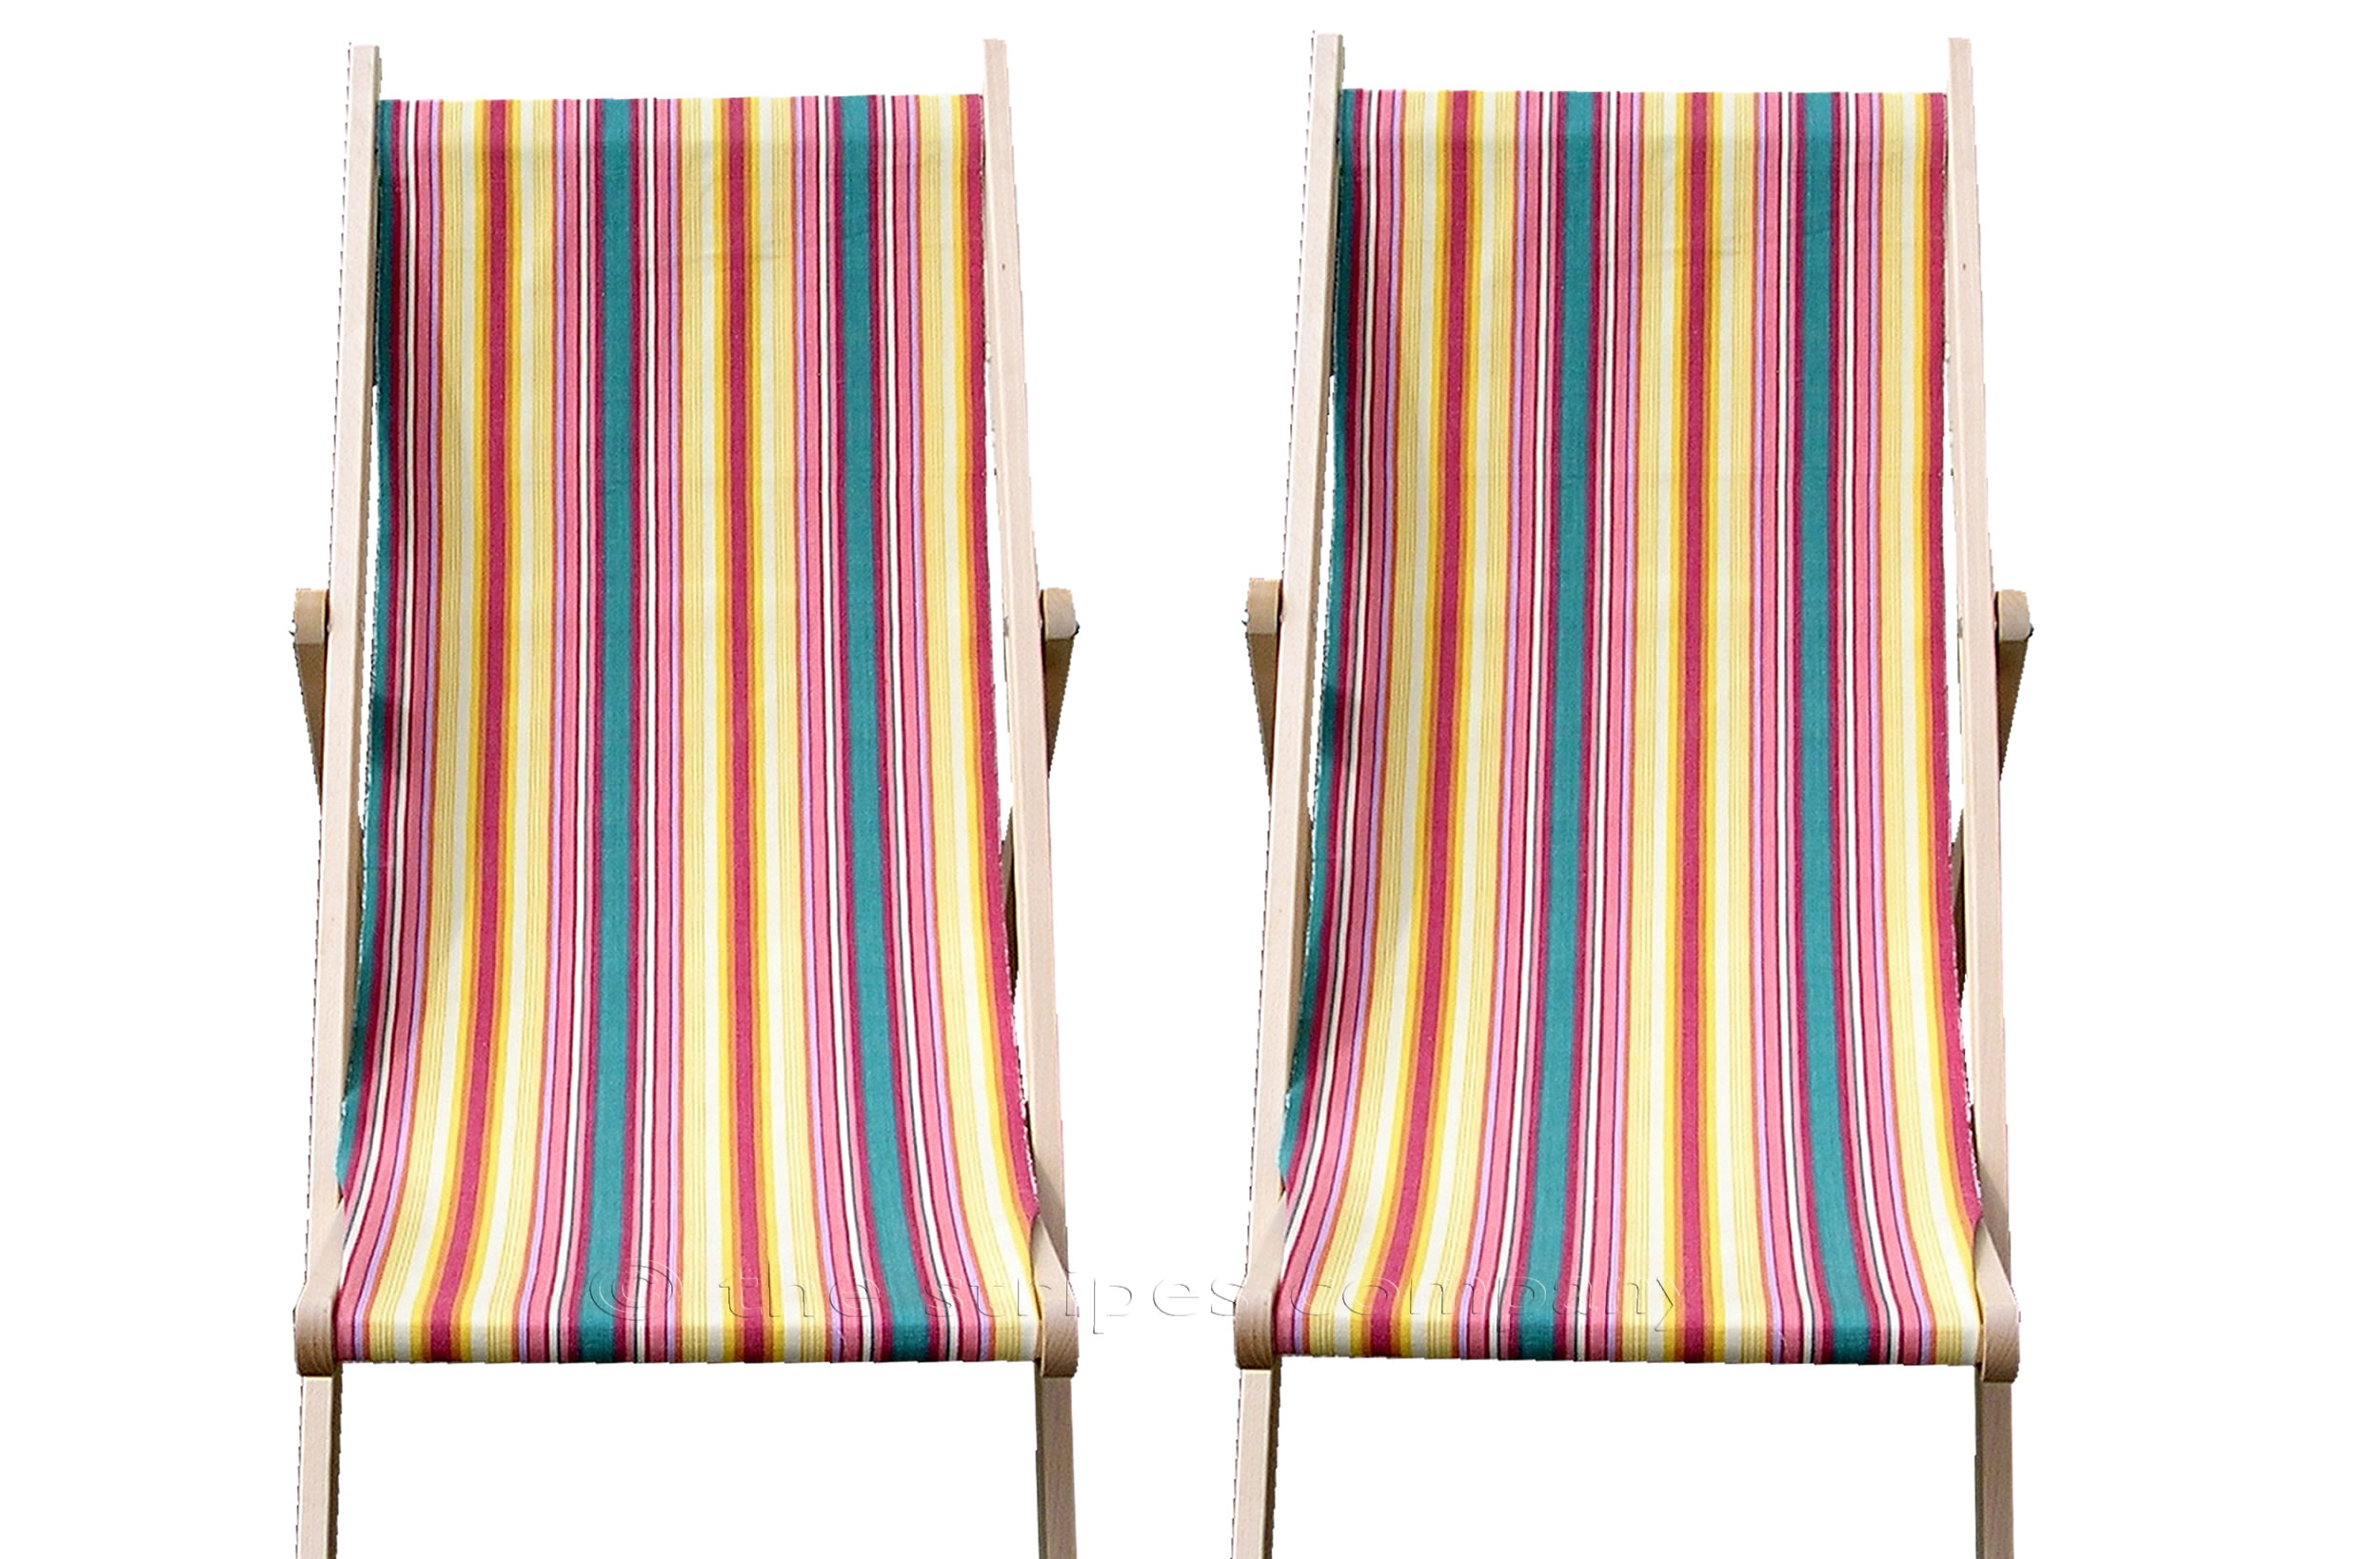 Yellow Deckchairs | Folding Wooden Deck Chairs Waltzing Stripes